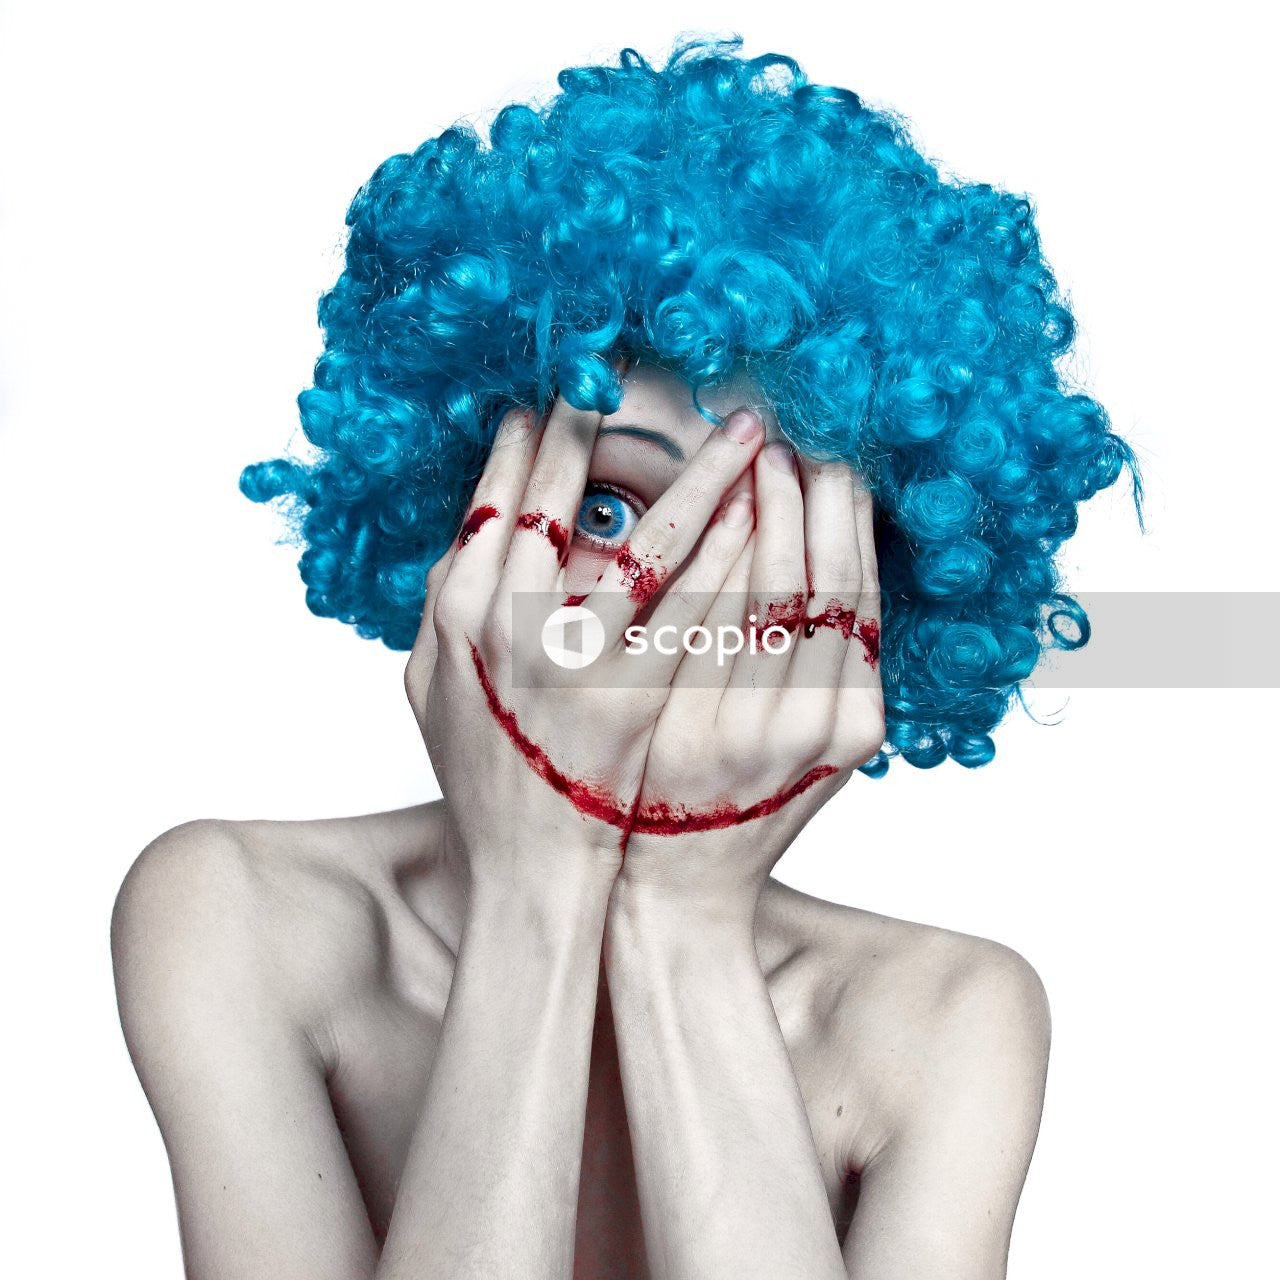 Woman with purple hair holding her face